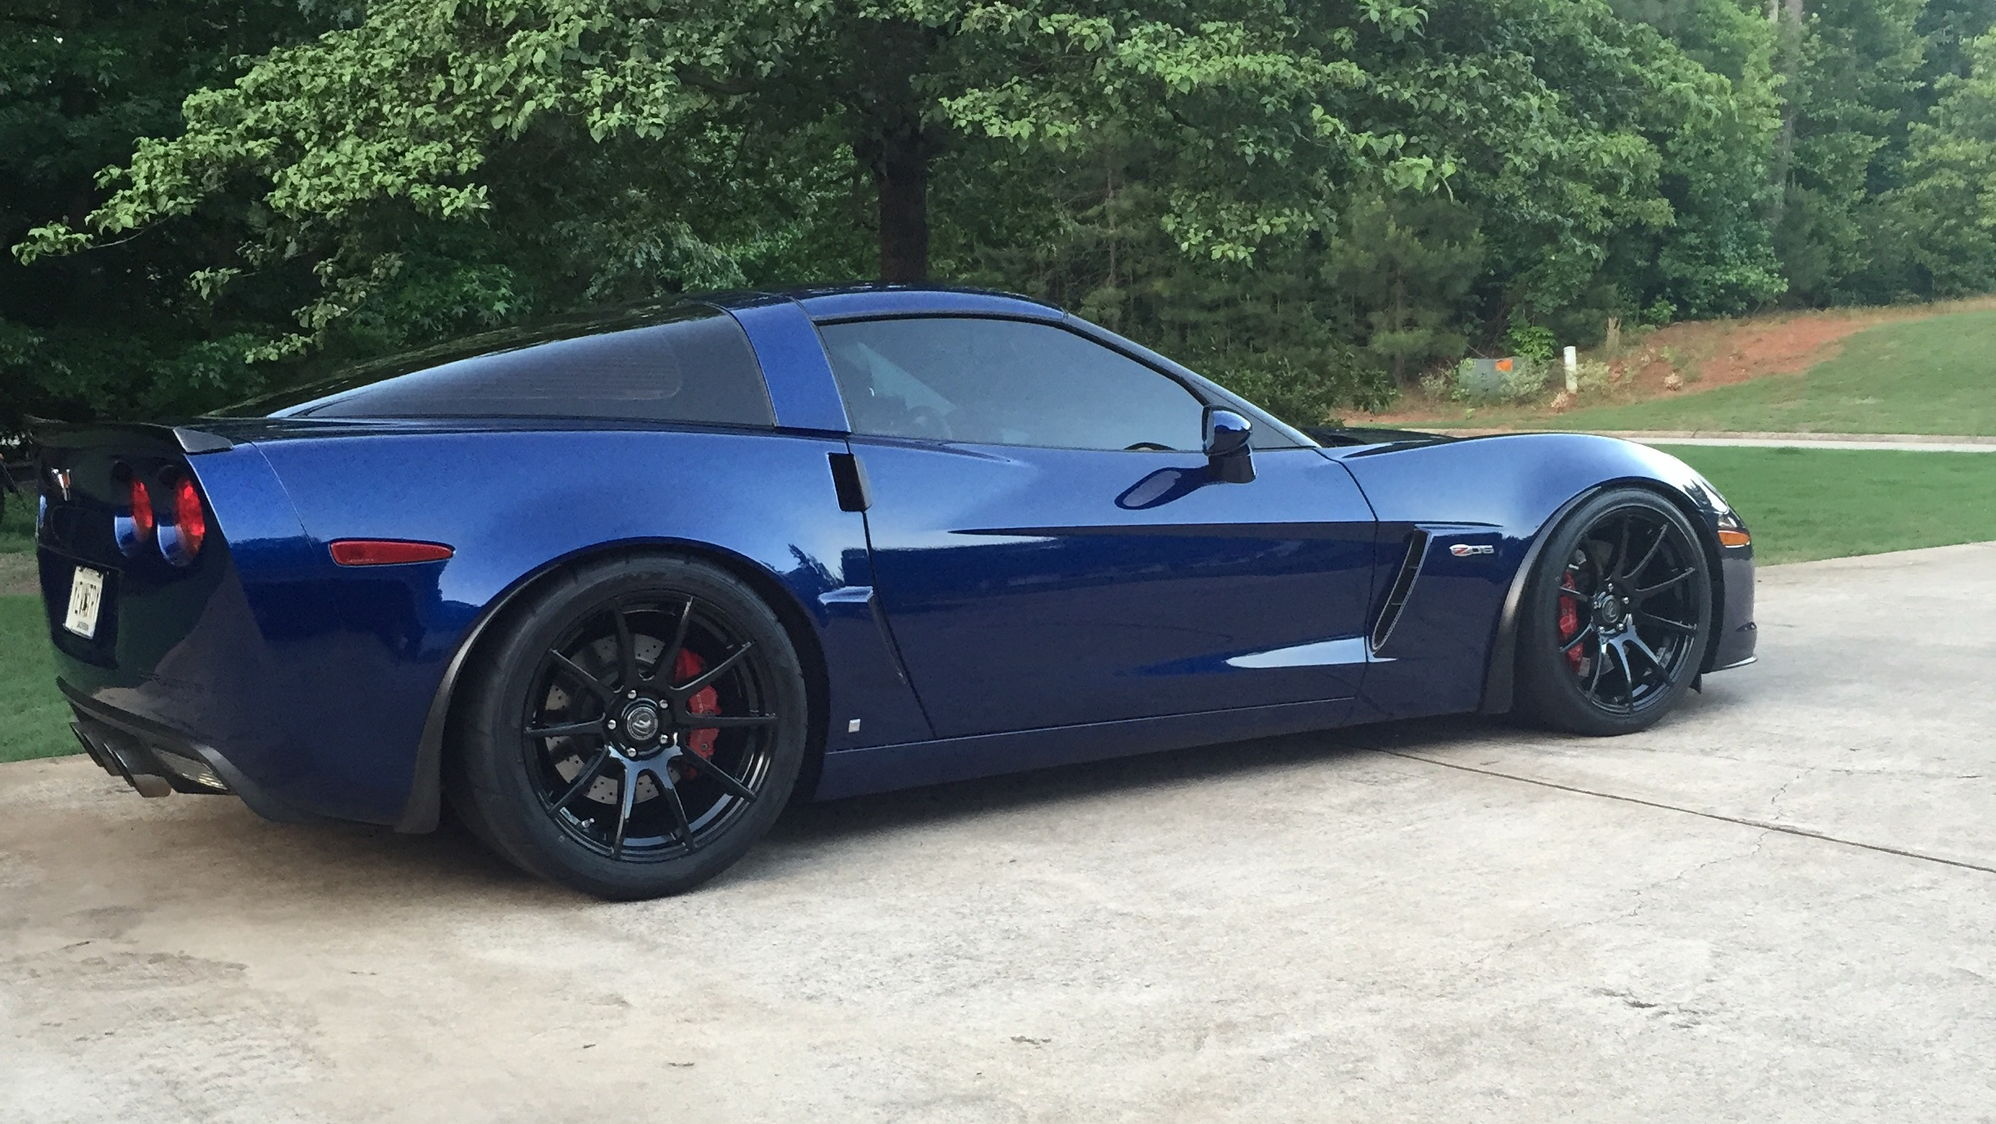 Lemans Blue Z06 S Corvetteforum Chevrolet Corvette